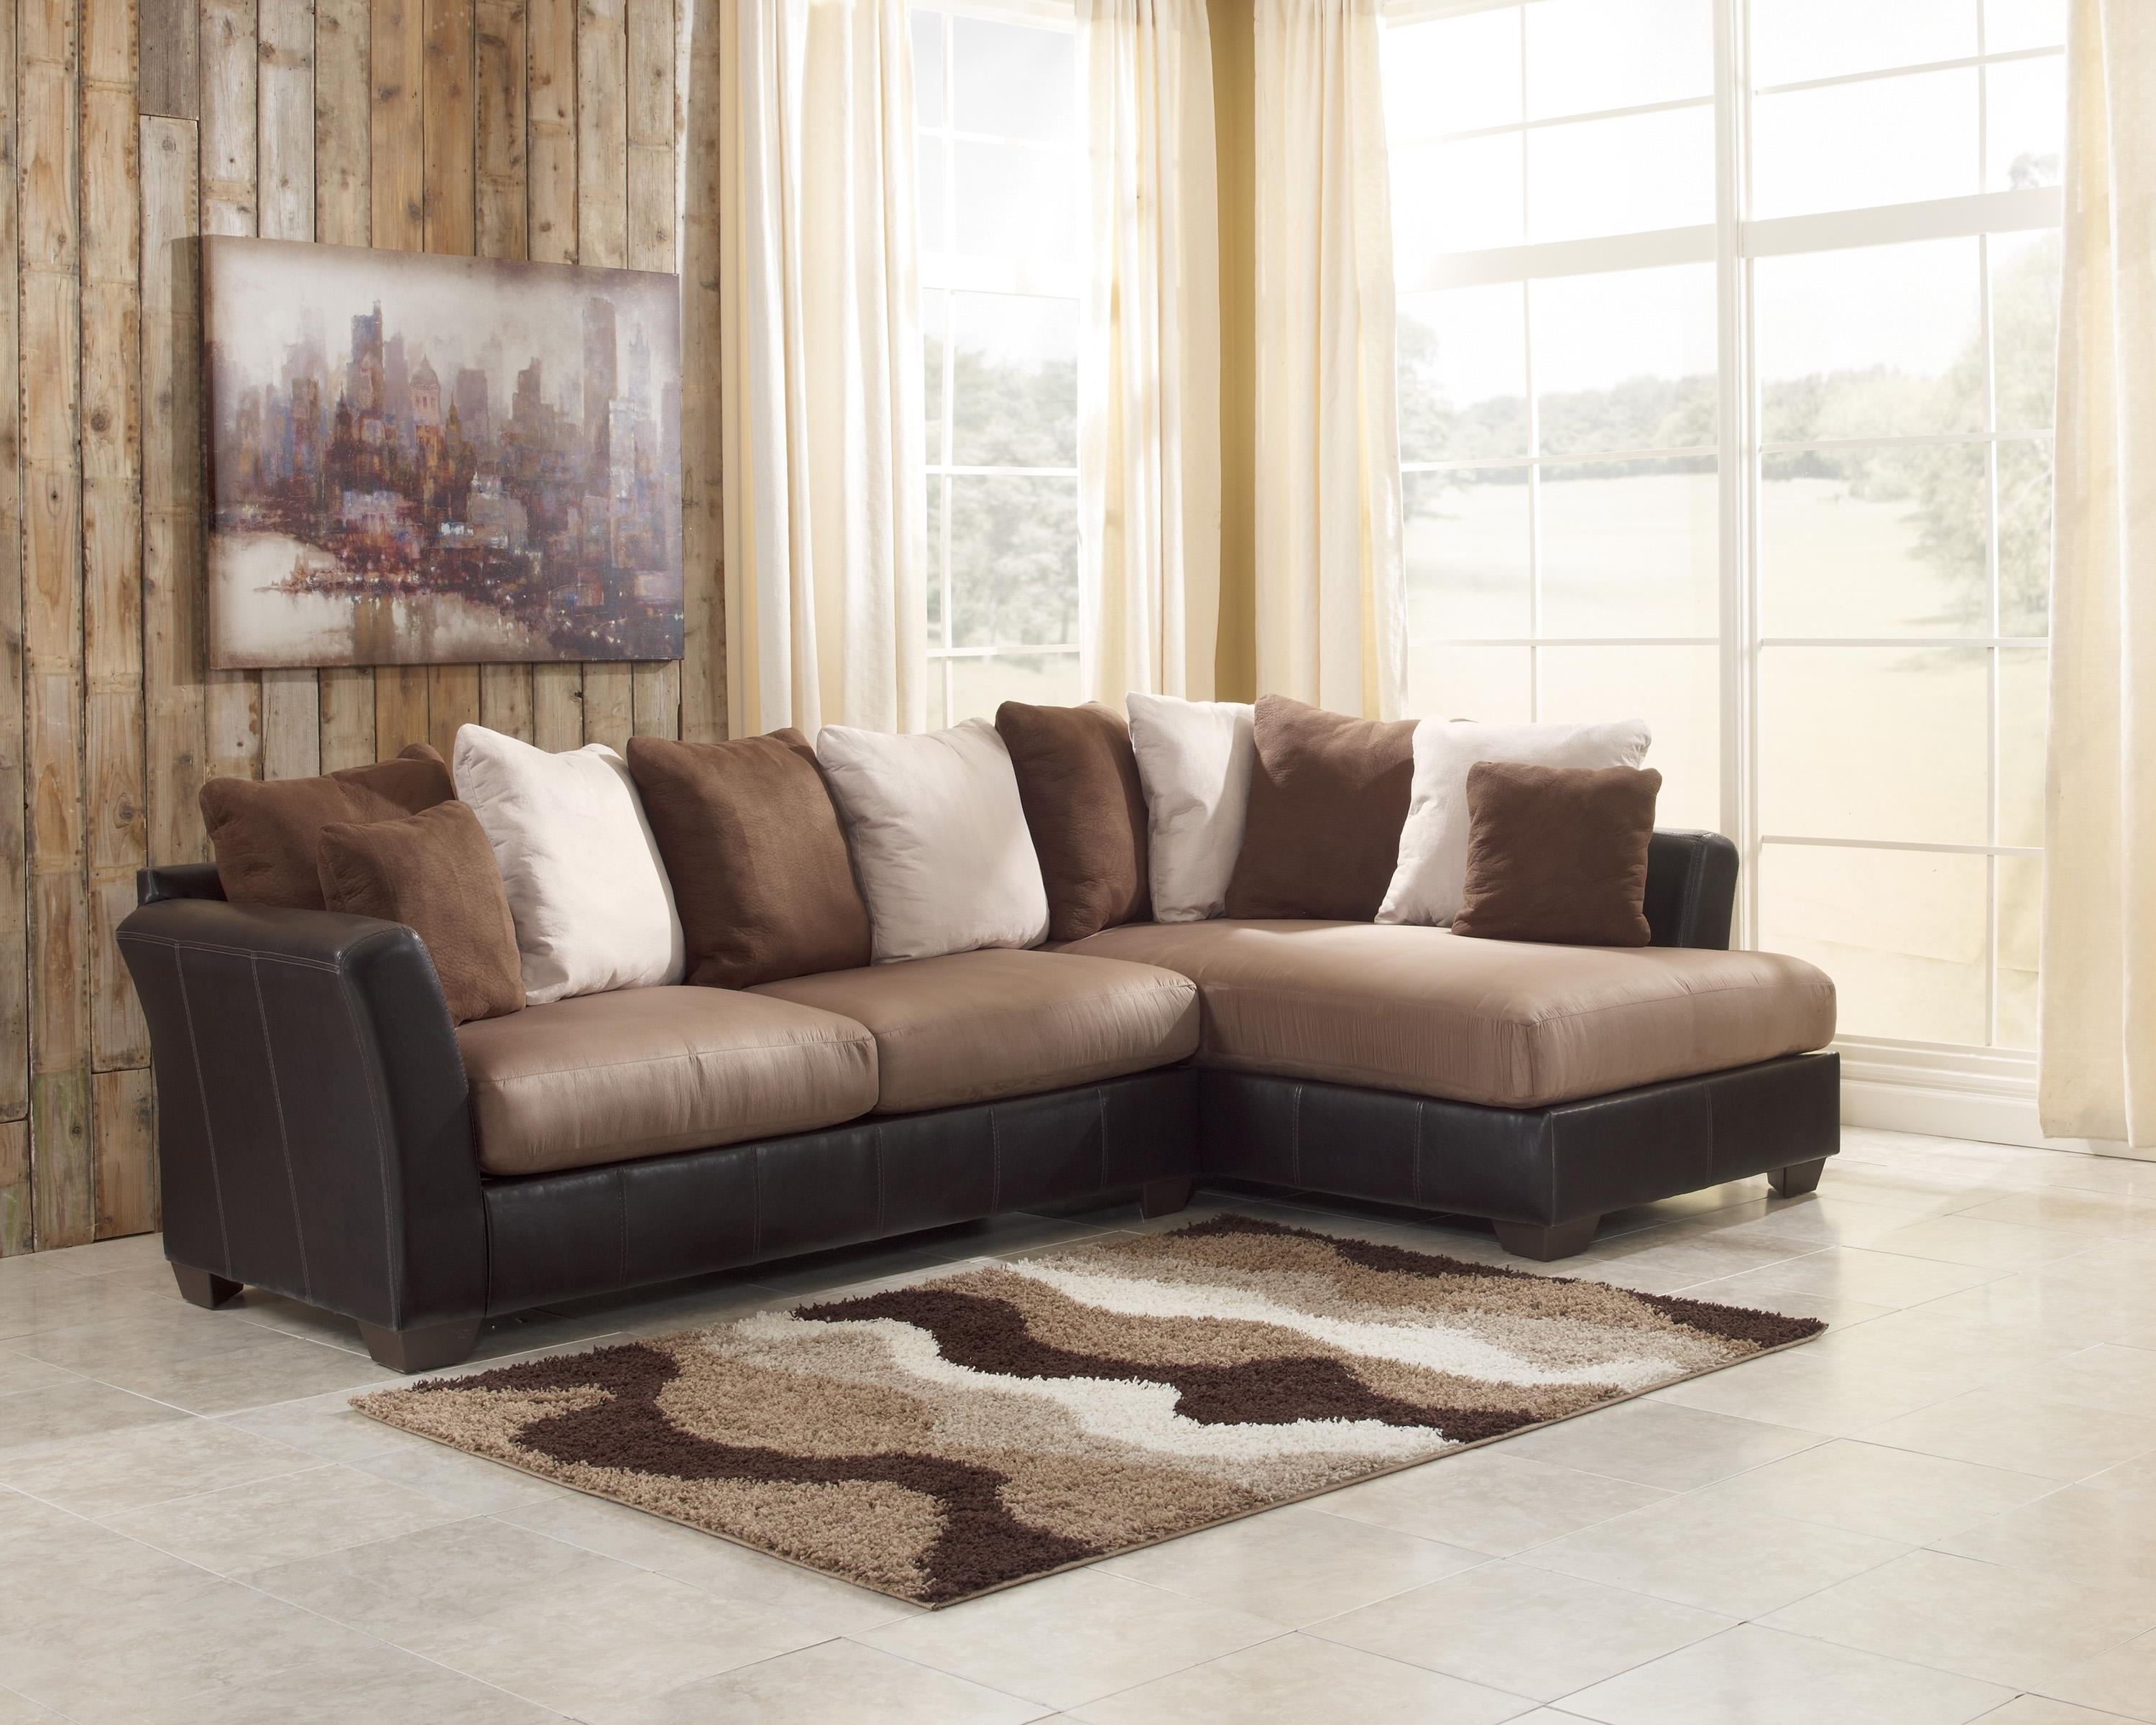 Gallery Individual Sectional Sofa Pieces - Mediasupload for Best and Newest Sectional Sofas That Come In Pieces